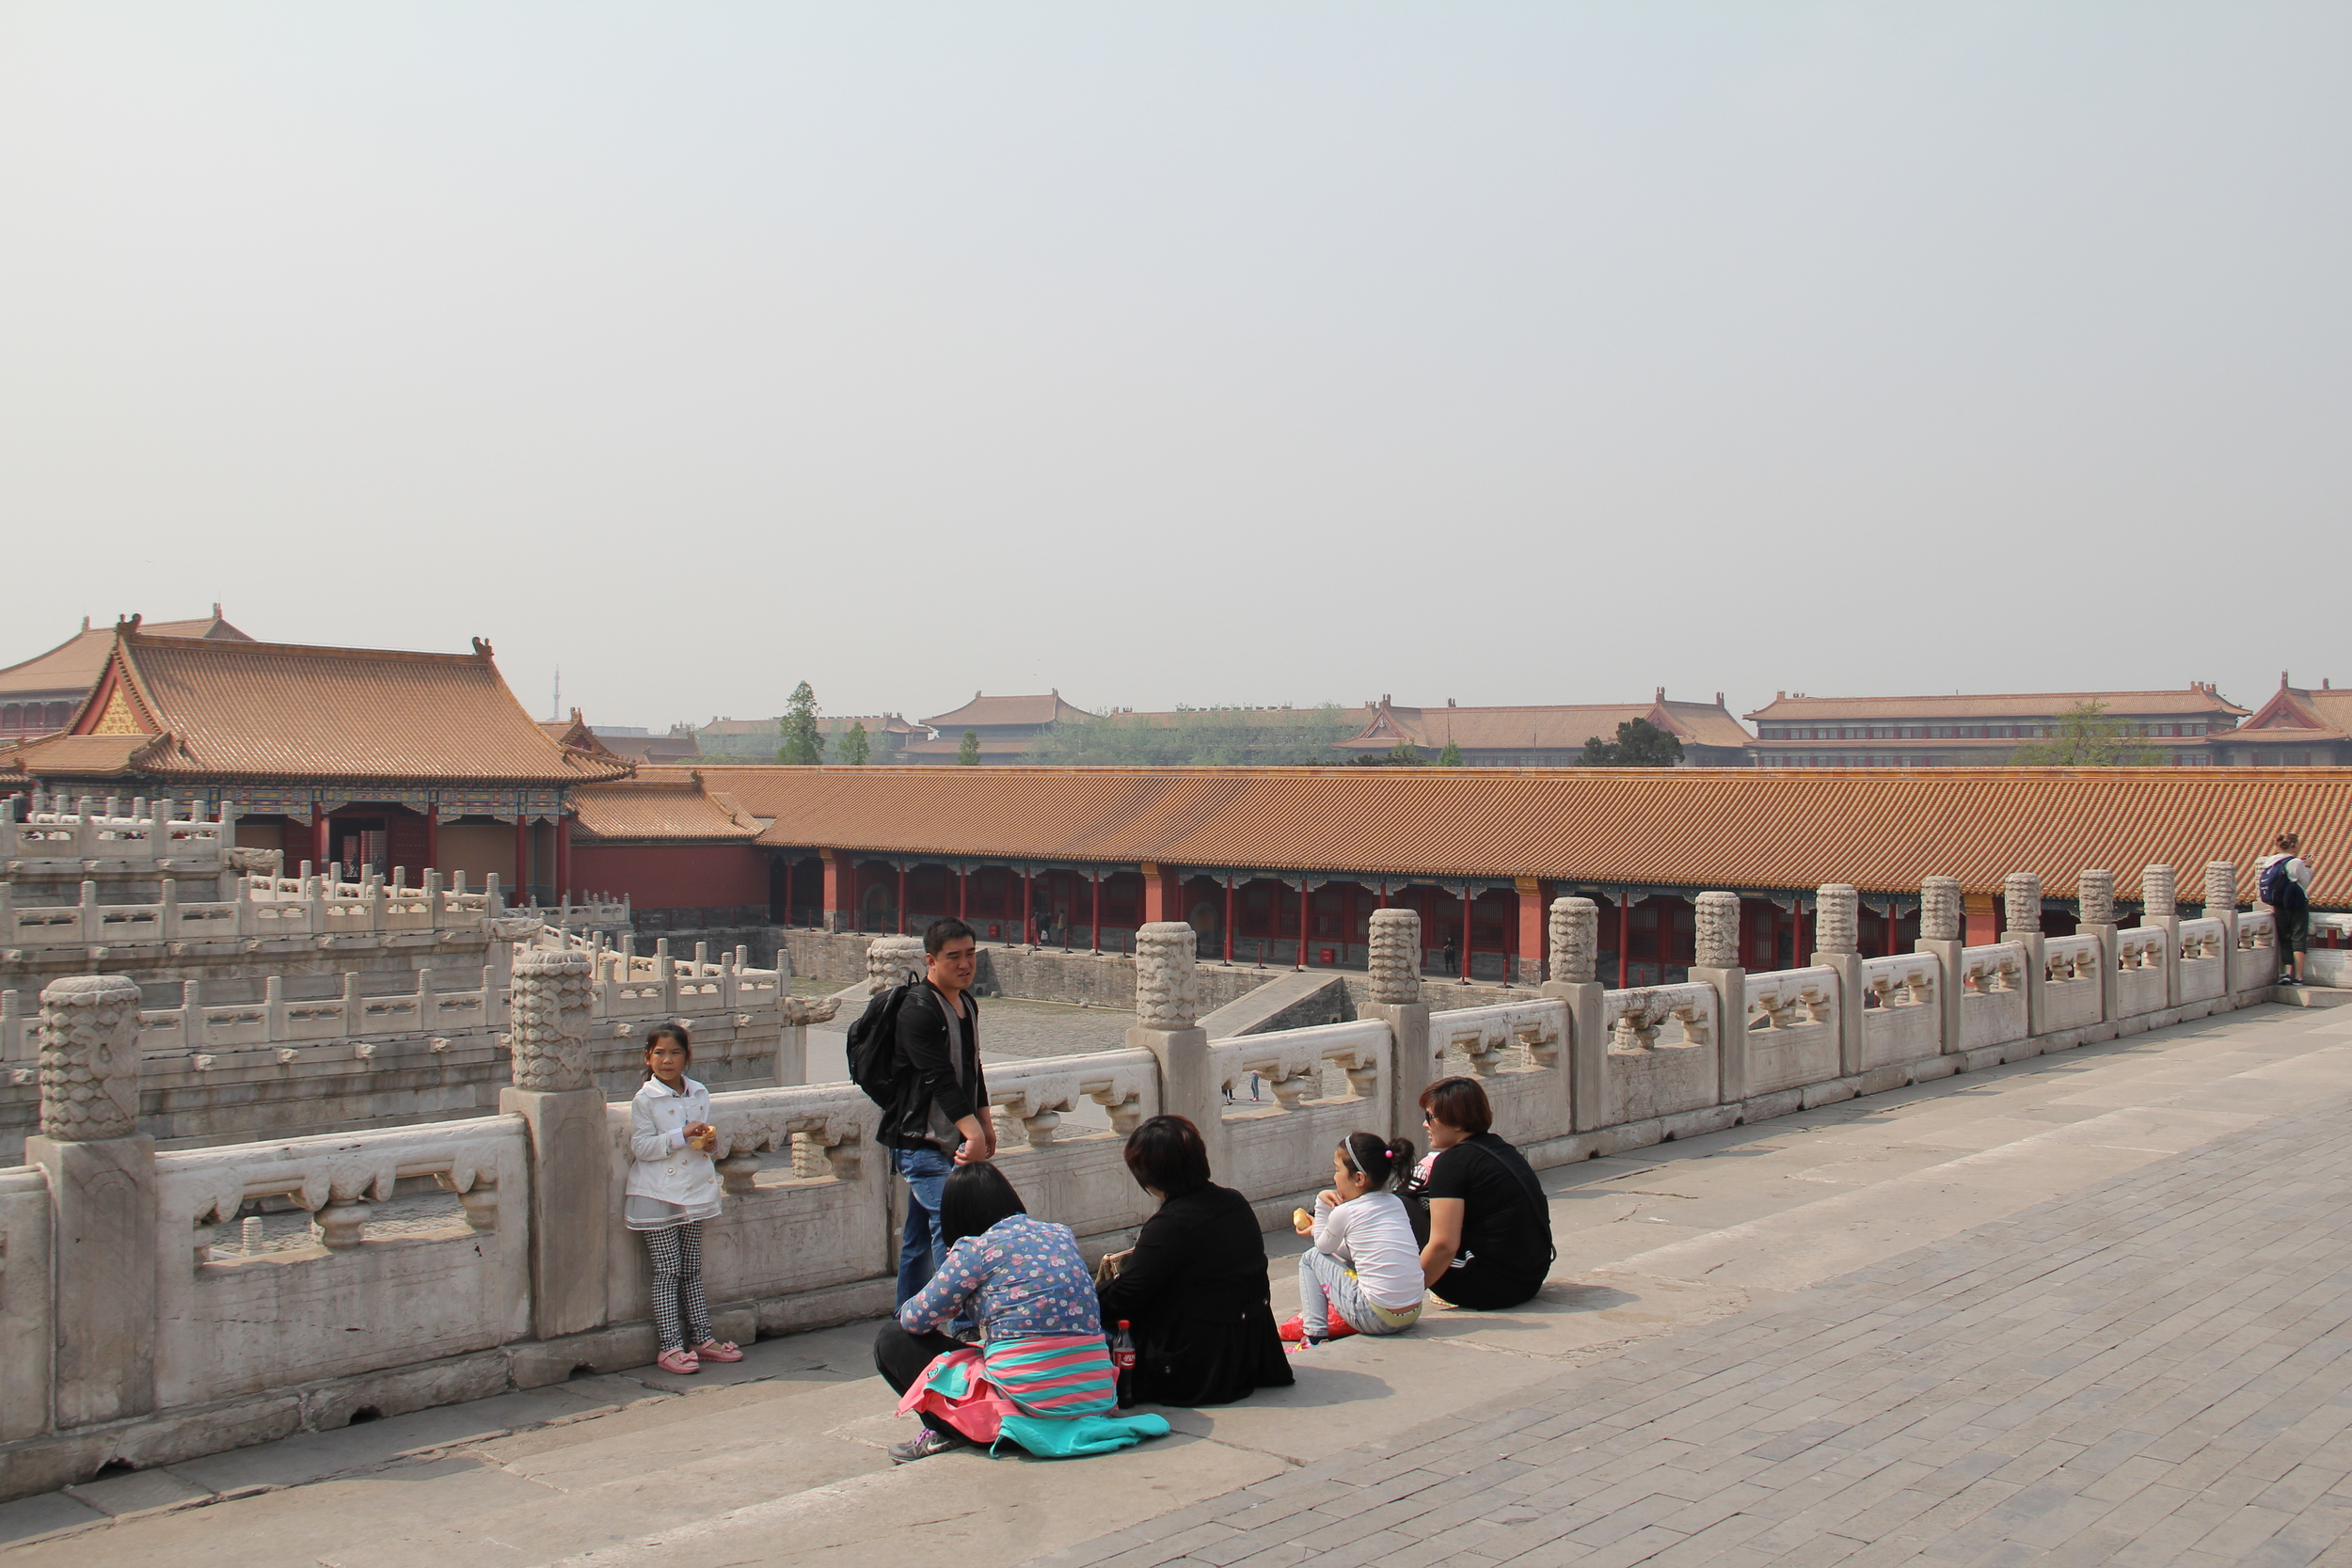 All those similar looking buildings in the background are all part of the Forbidden City. It's immense!